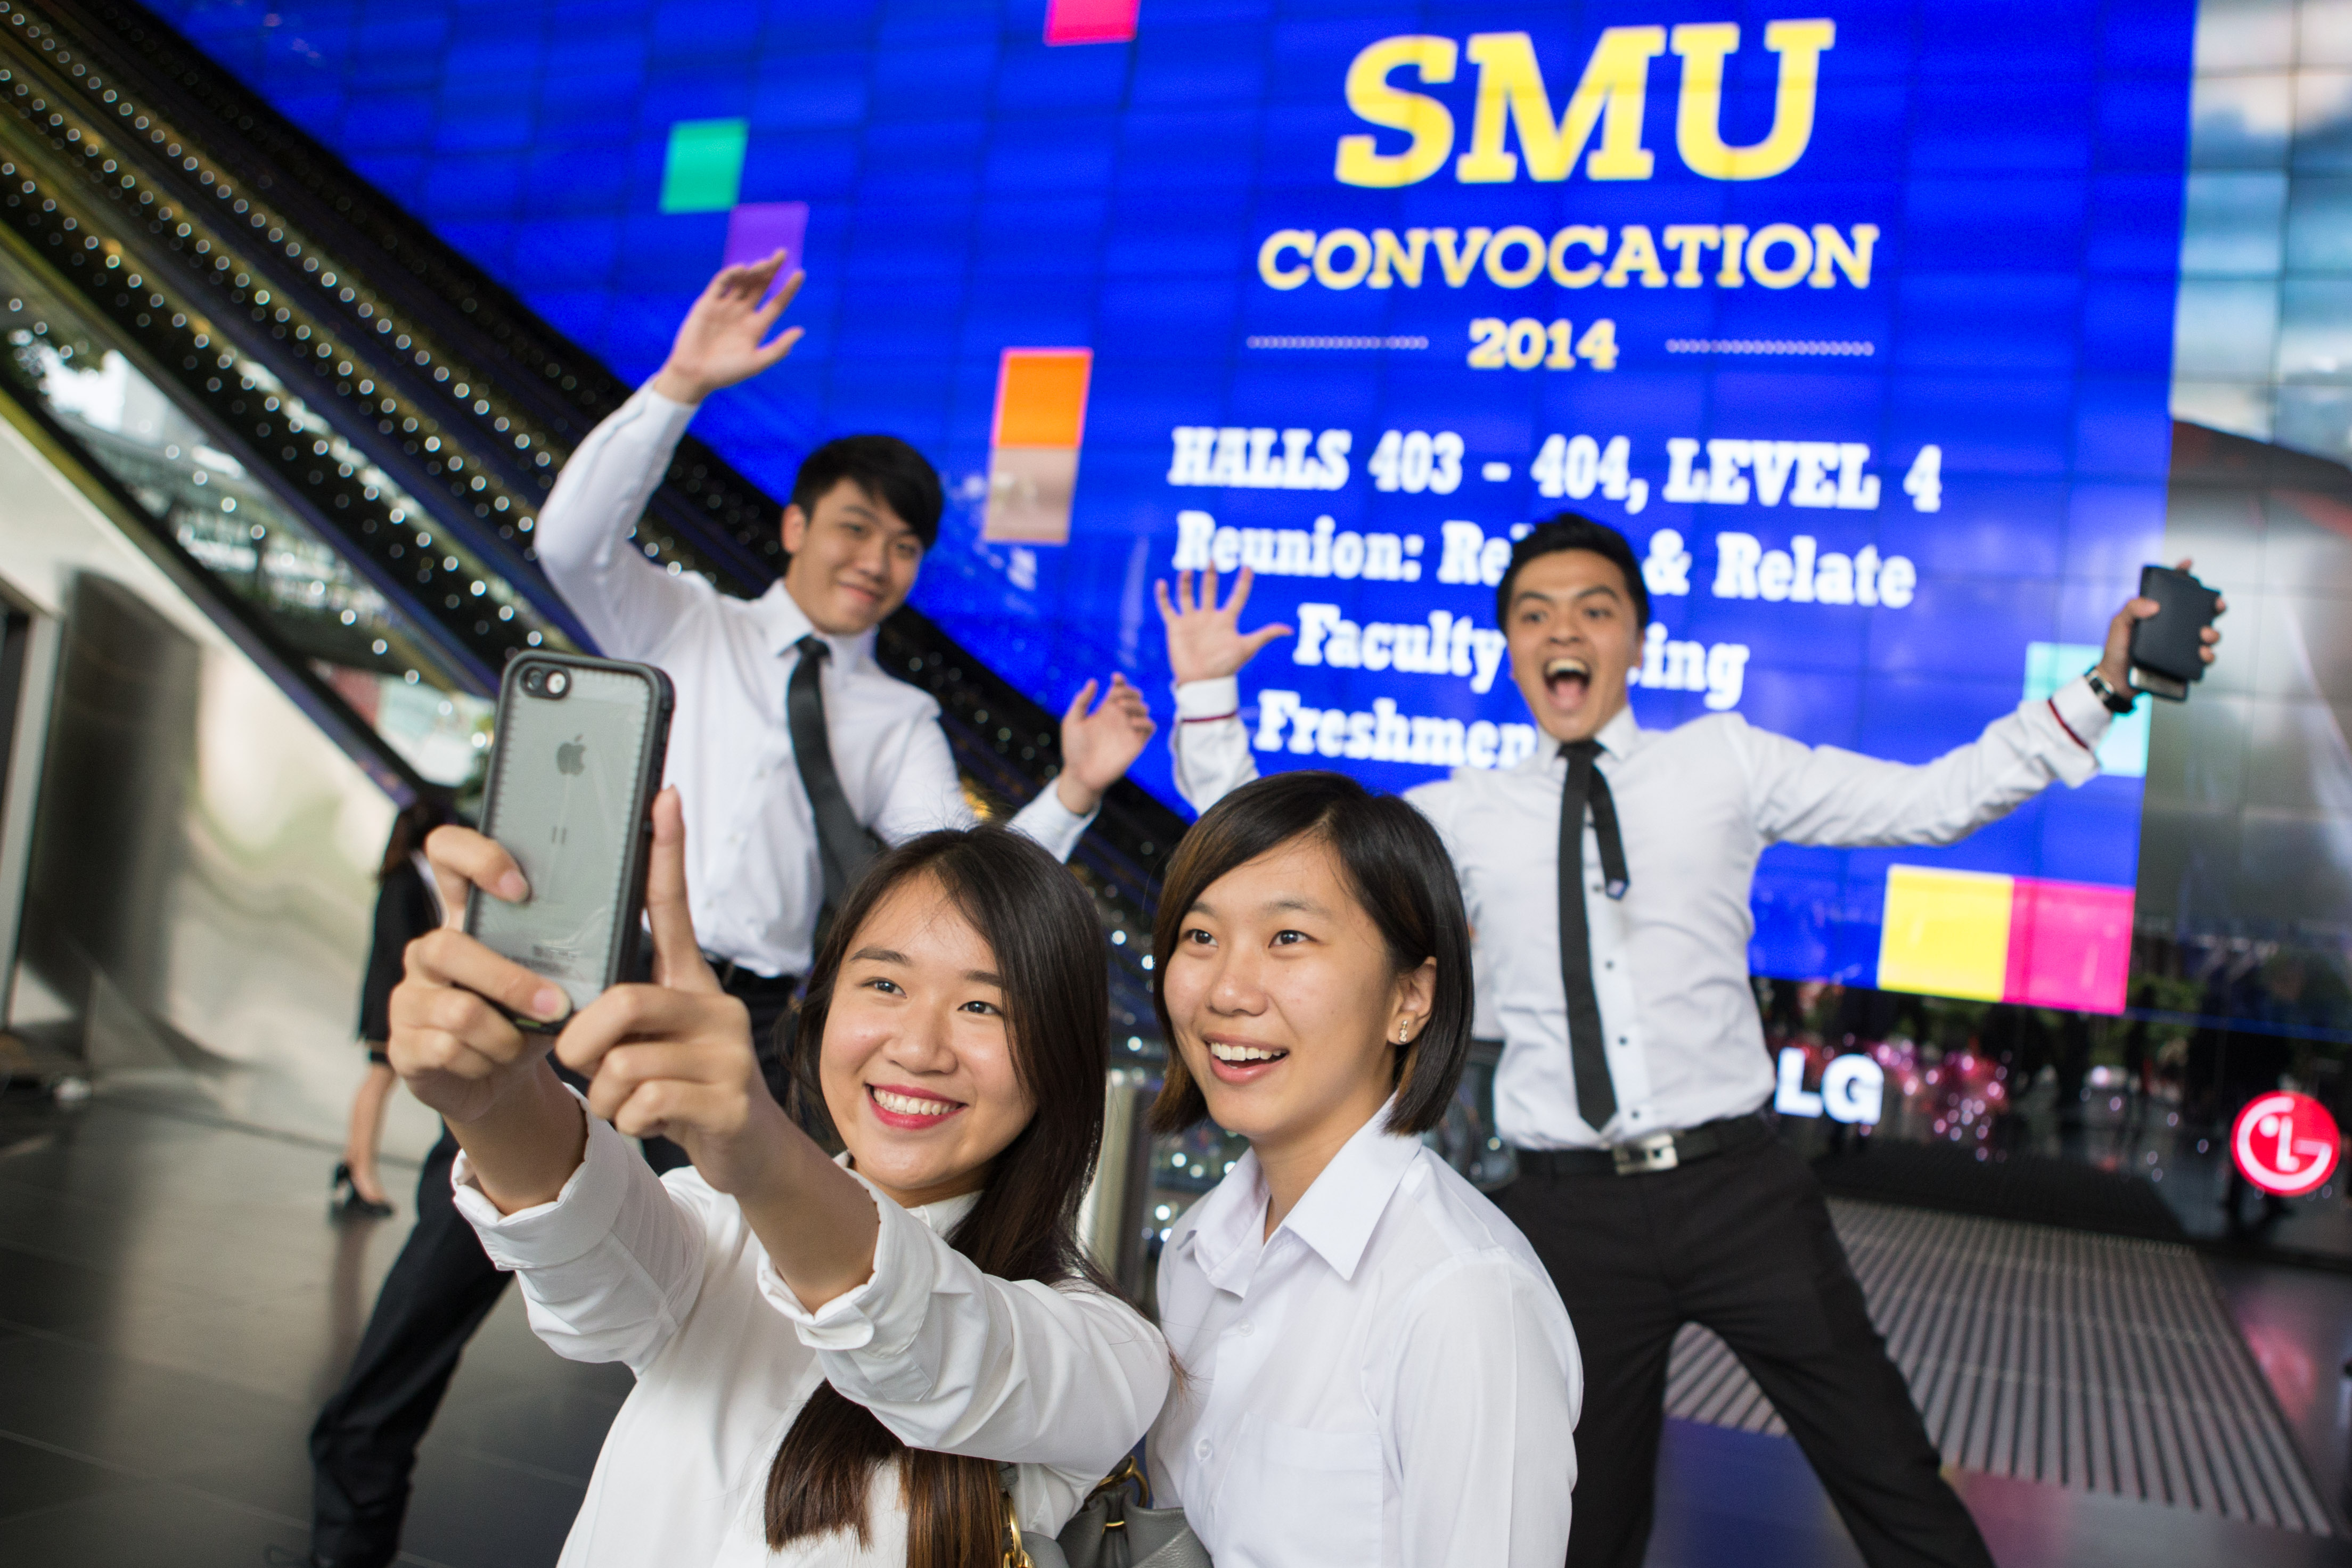 SMU Convocation 2014: Students taking a selfie at Suntec Convention Centre